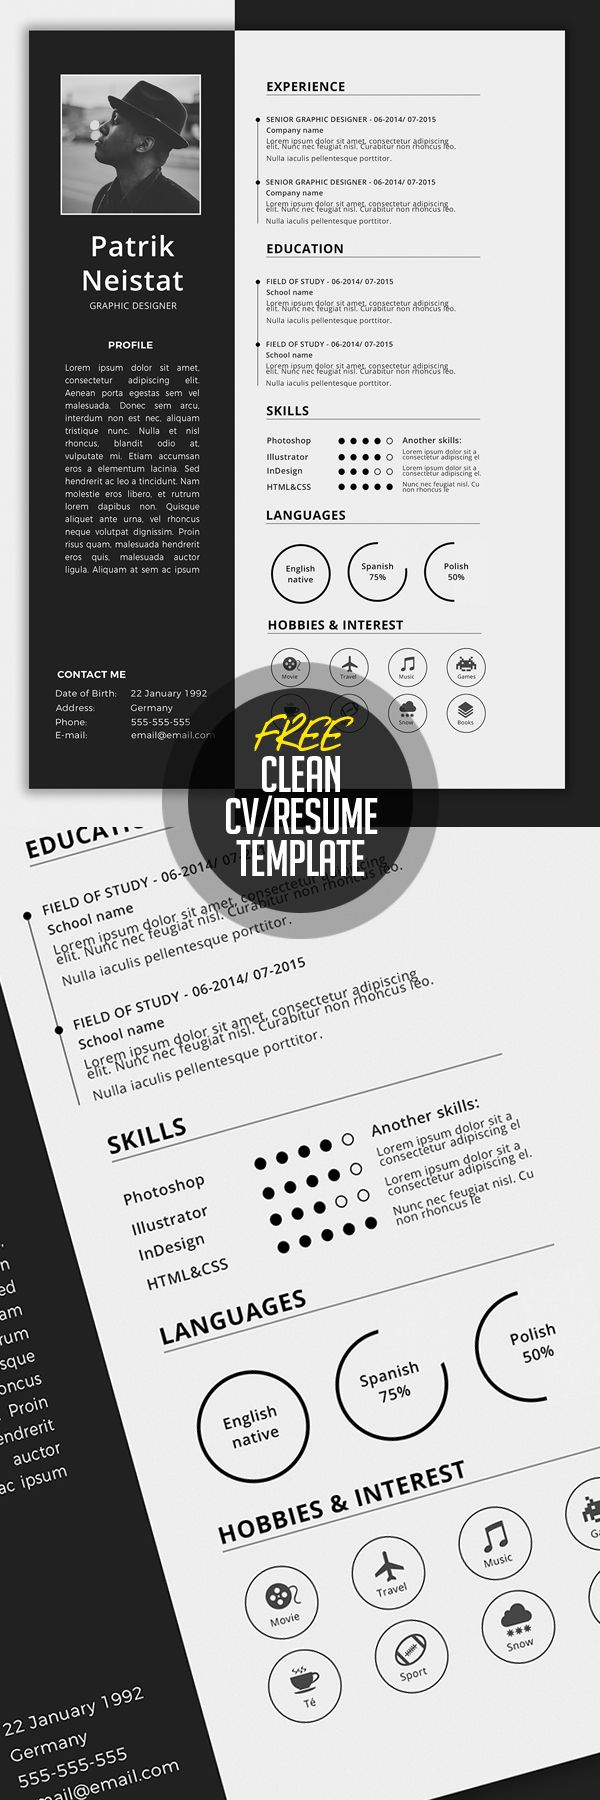 Pretty 10 Best Resume Writers Tiny 100 Square Pool Template Solid 100 Winning Resumes For Top Jobs Pdf 16 Year Old Resumes Youthful 2.25 Button Template Blue2013 Resume Writing Trends 25  Best Ideas About Free Cv Template On Pinterest | Cv Resume ..